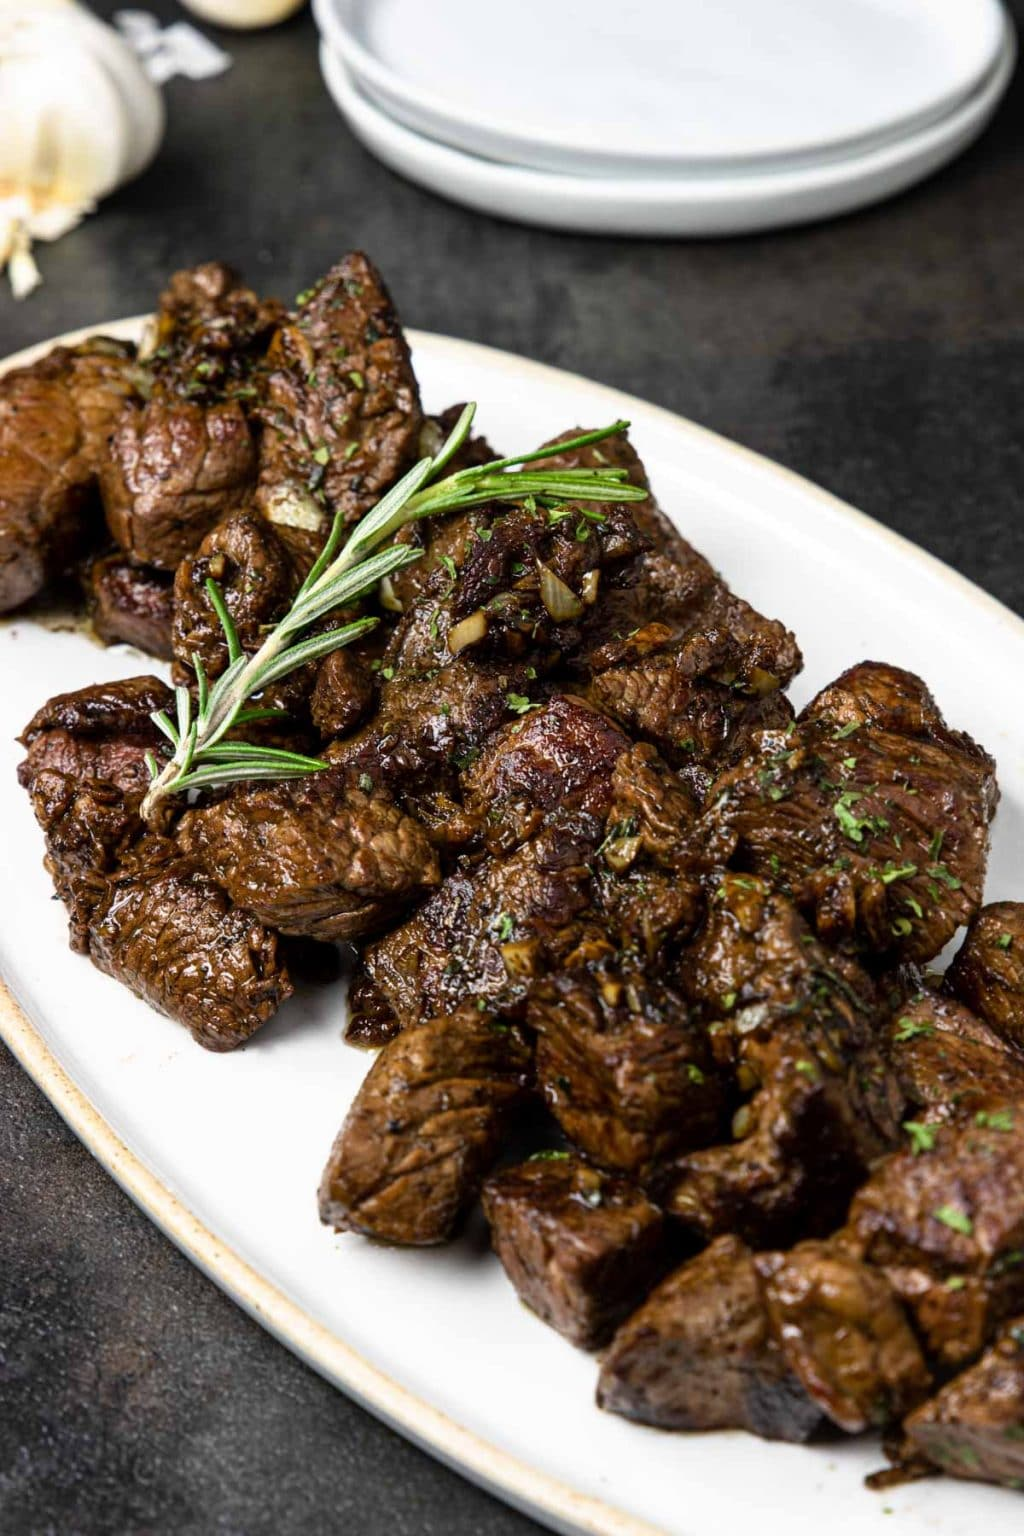 Pan seared steak bites in a garlic butter sauce on a white plate topped with rosemary